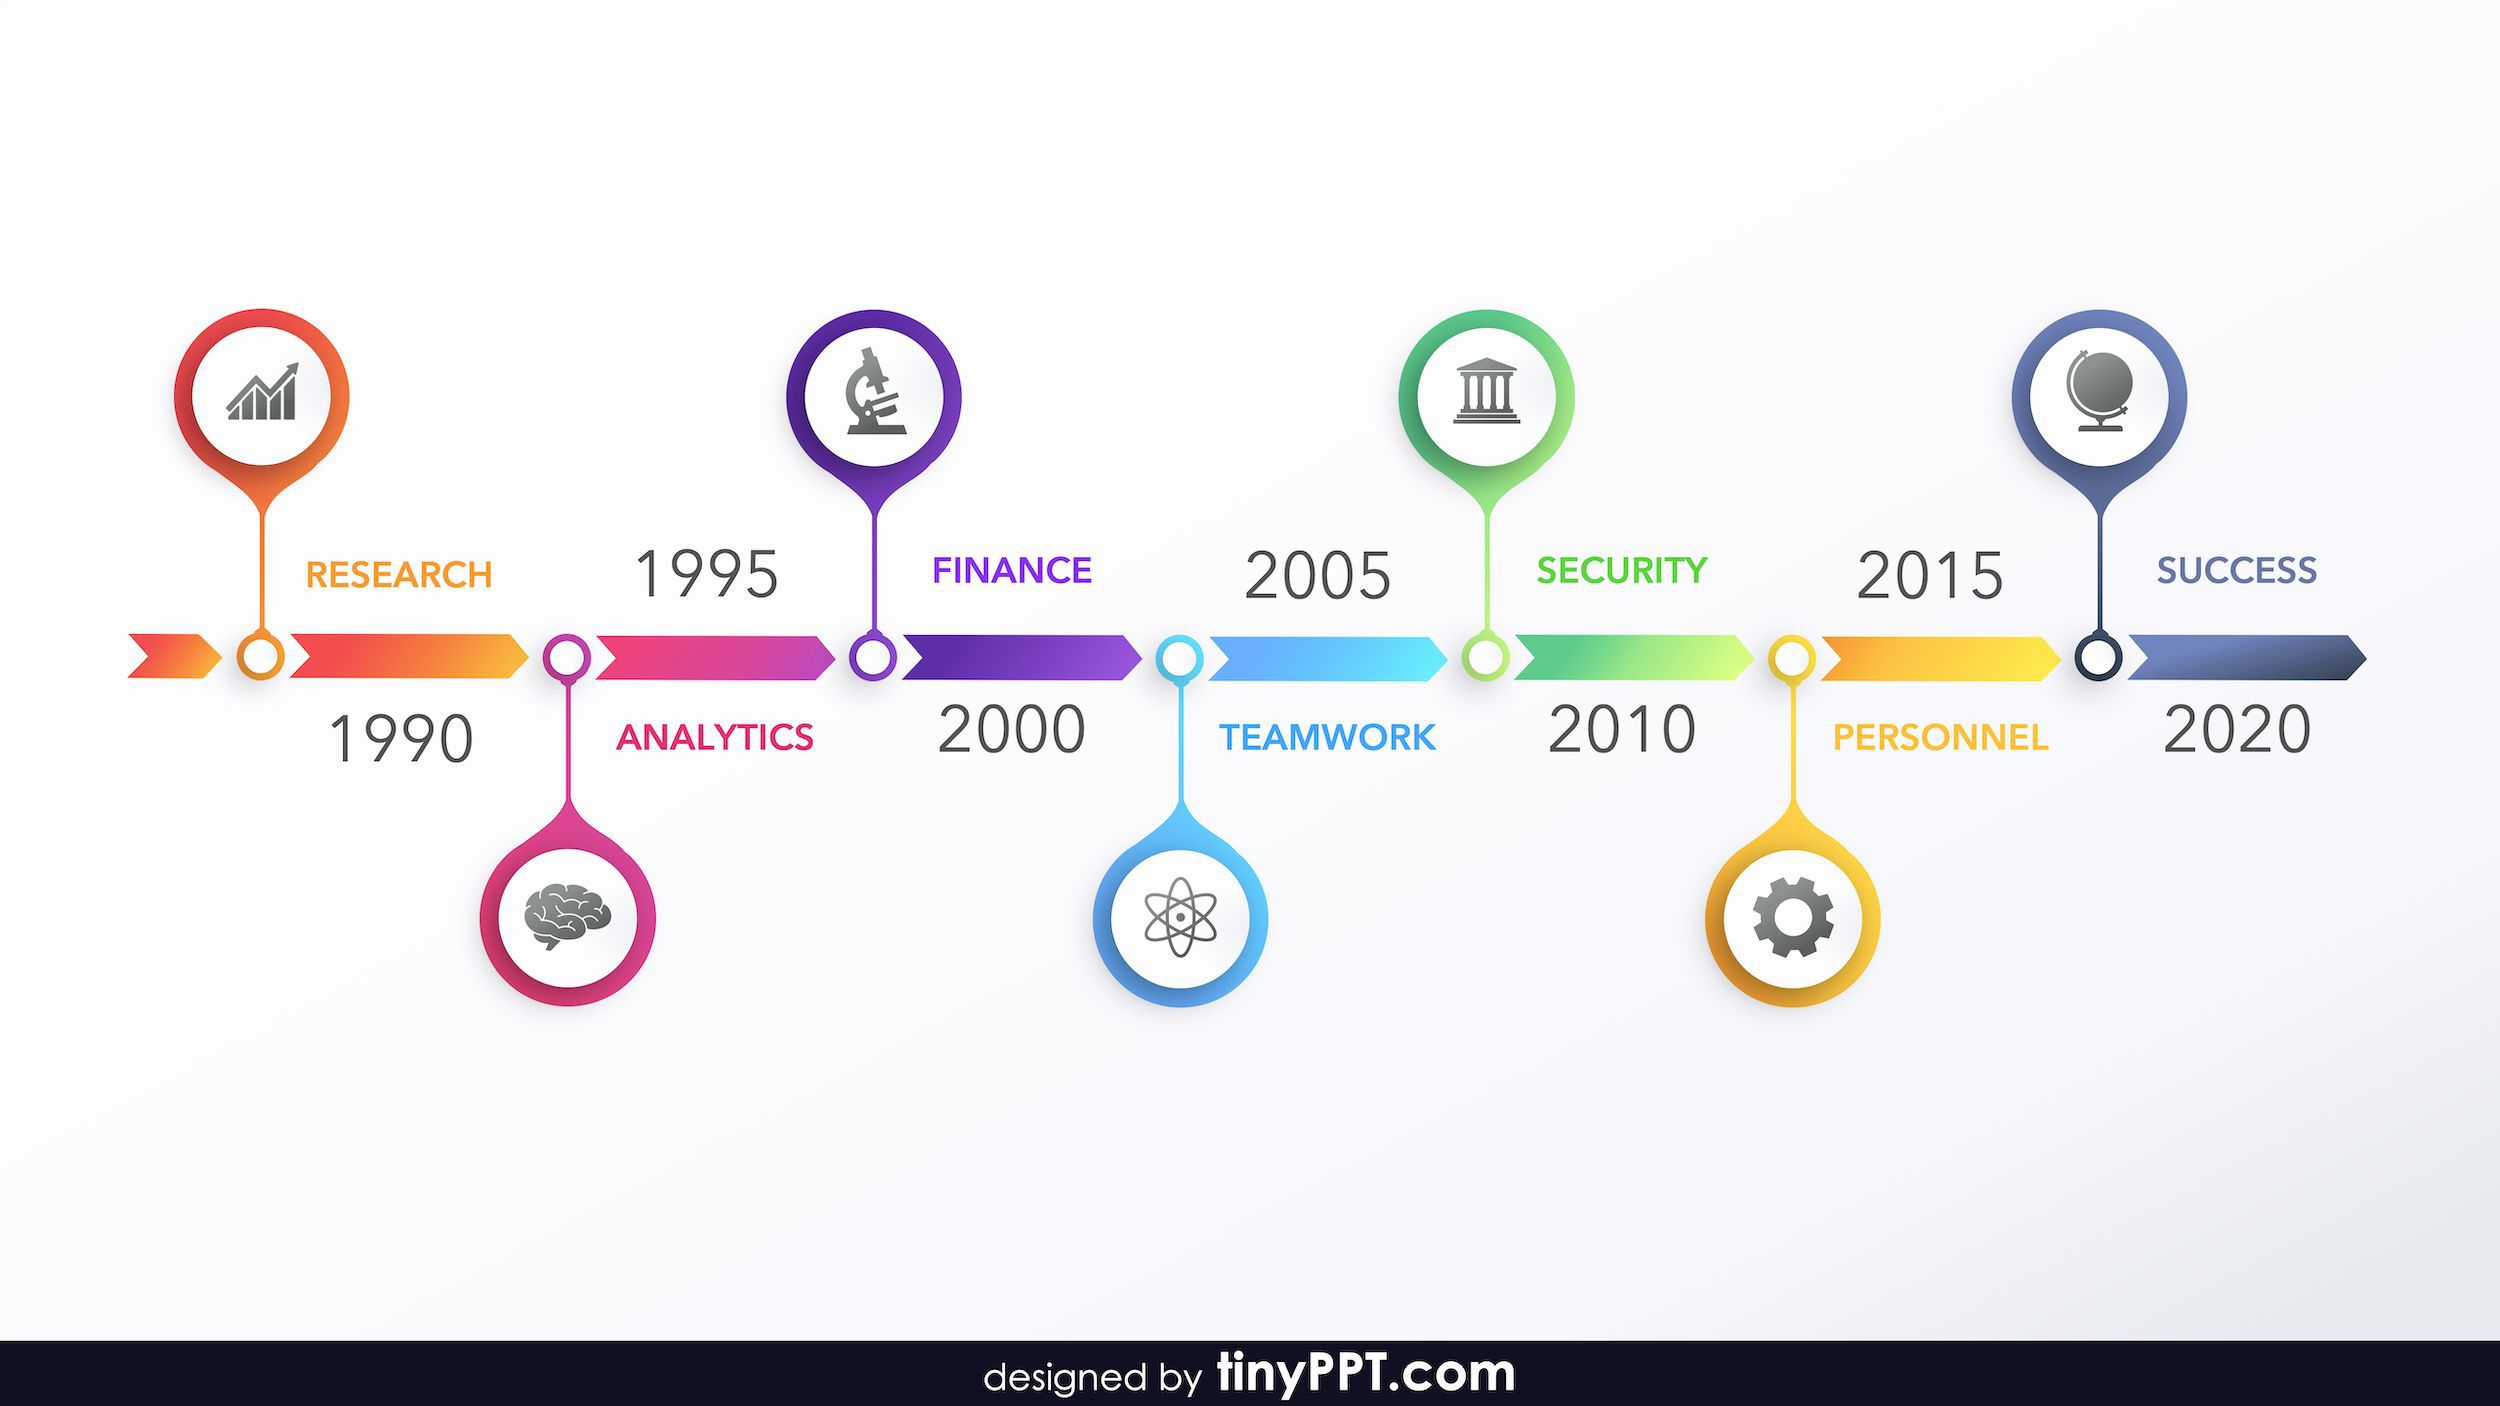 000 Fantastic Timeline Powerpoint Template Download Free High Def  Project AnimatedFull